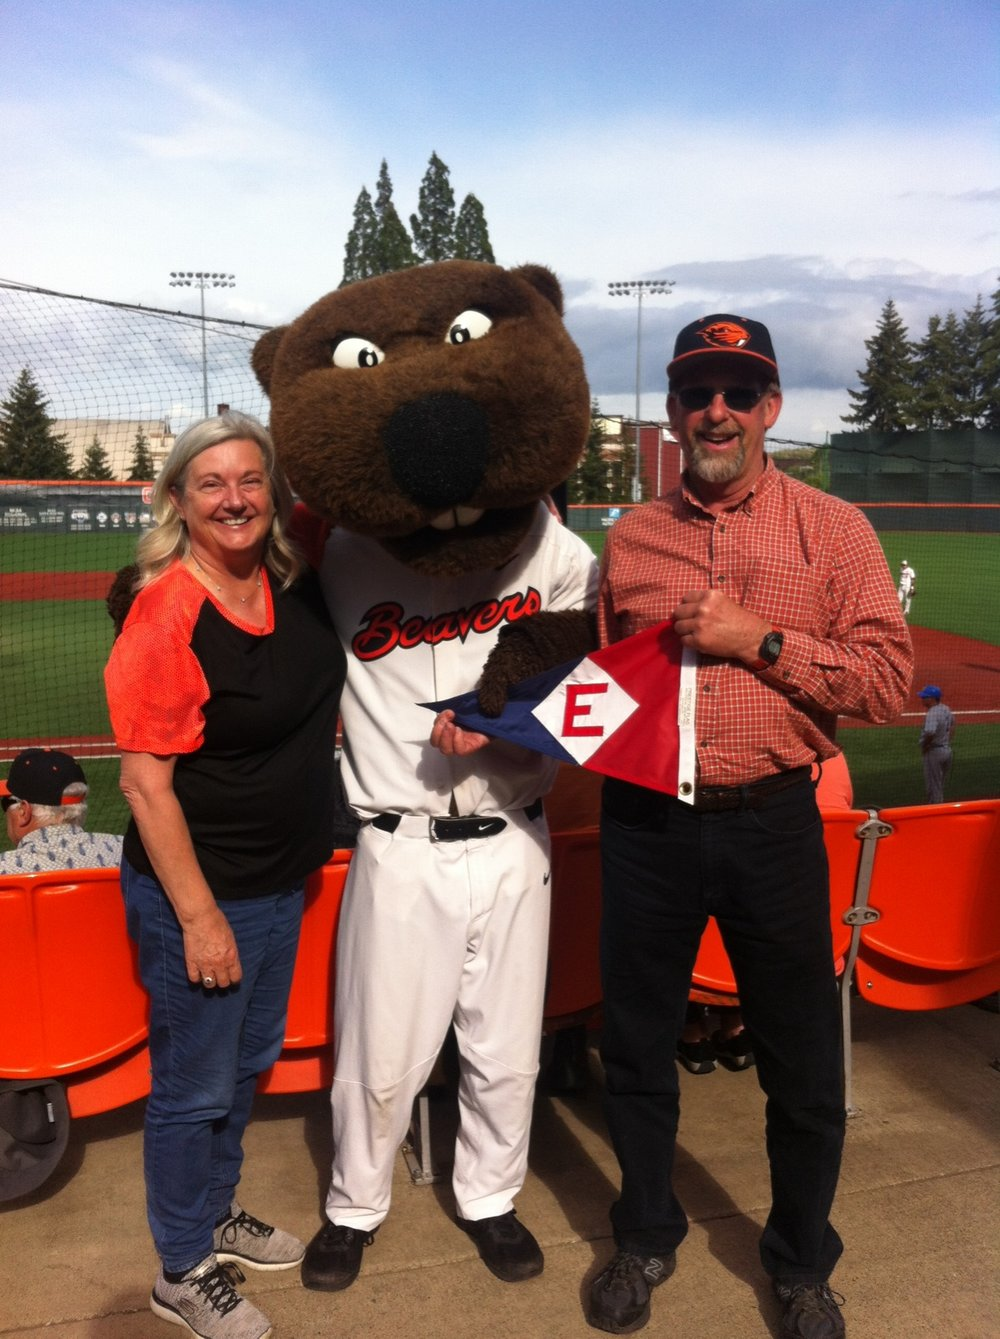 Mary and Chip Balough share some spirit with Benny Beaver at an Oregon State baseball game.